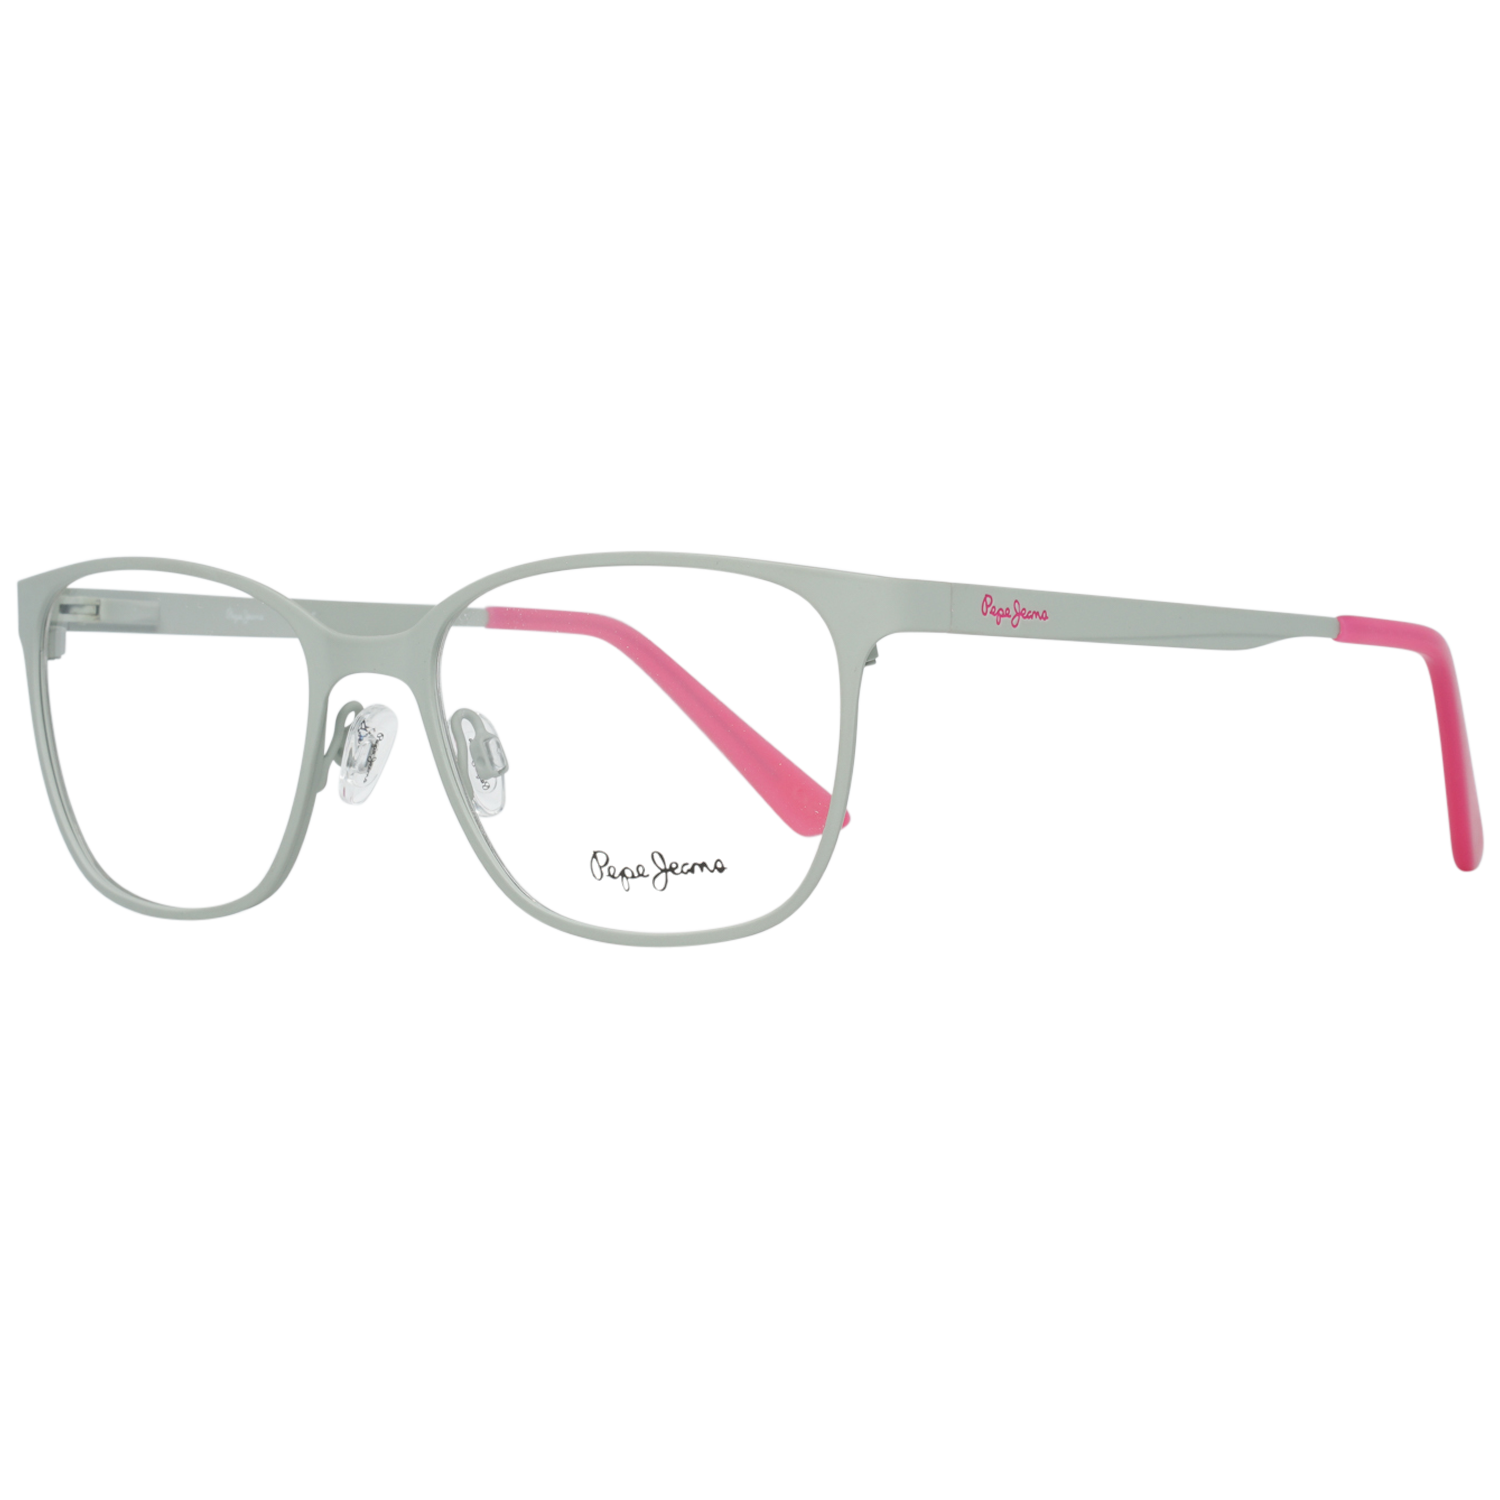 Pepe Jeans Optical Frame P1200 C3 Justis Unisex Grey